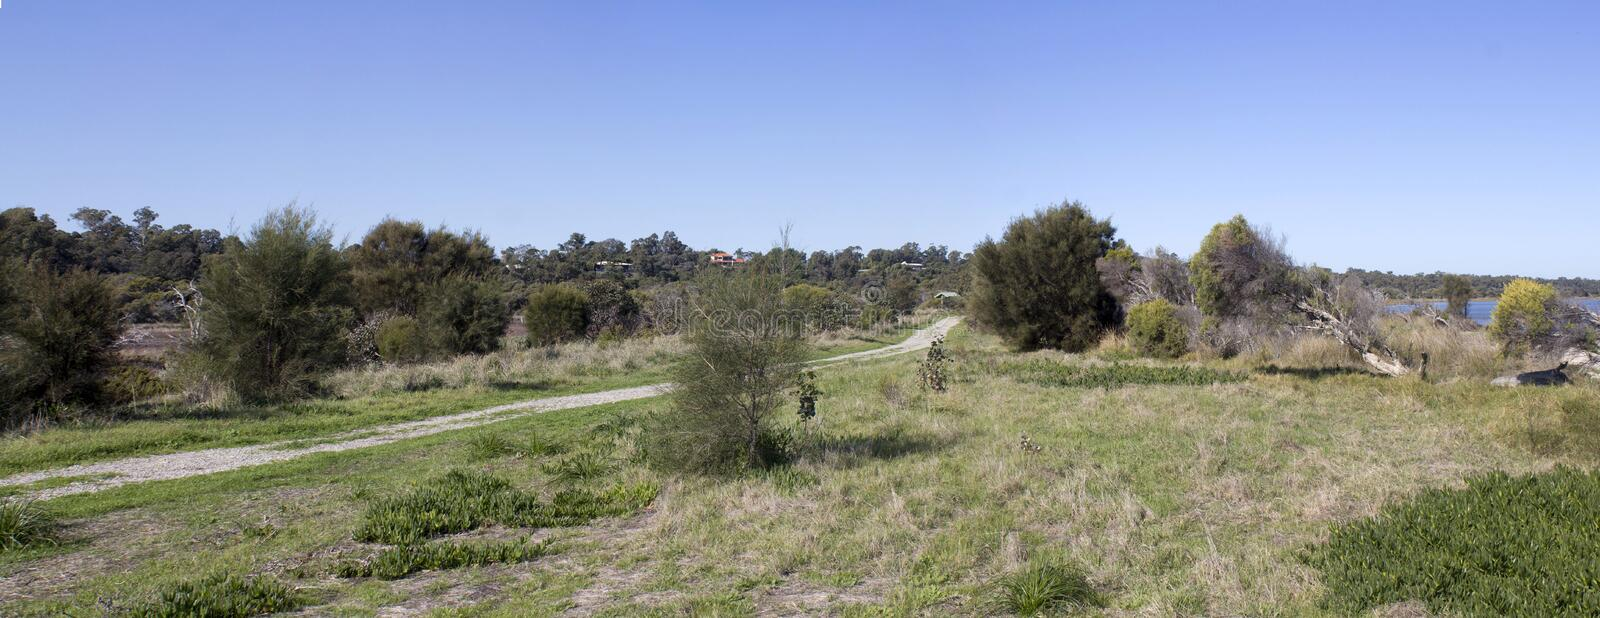 Panorama of the walkpath along the Leschenault Estuary Bunbury Western Australia . The panoramic view of the environment around the shallow Leschenault Estuary stock photos